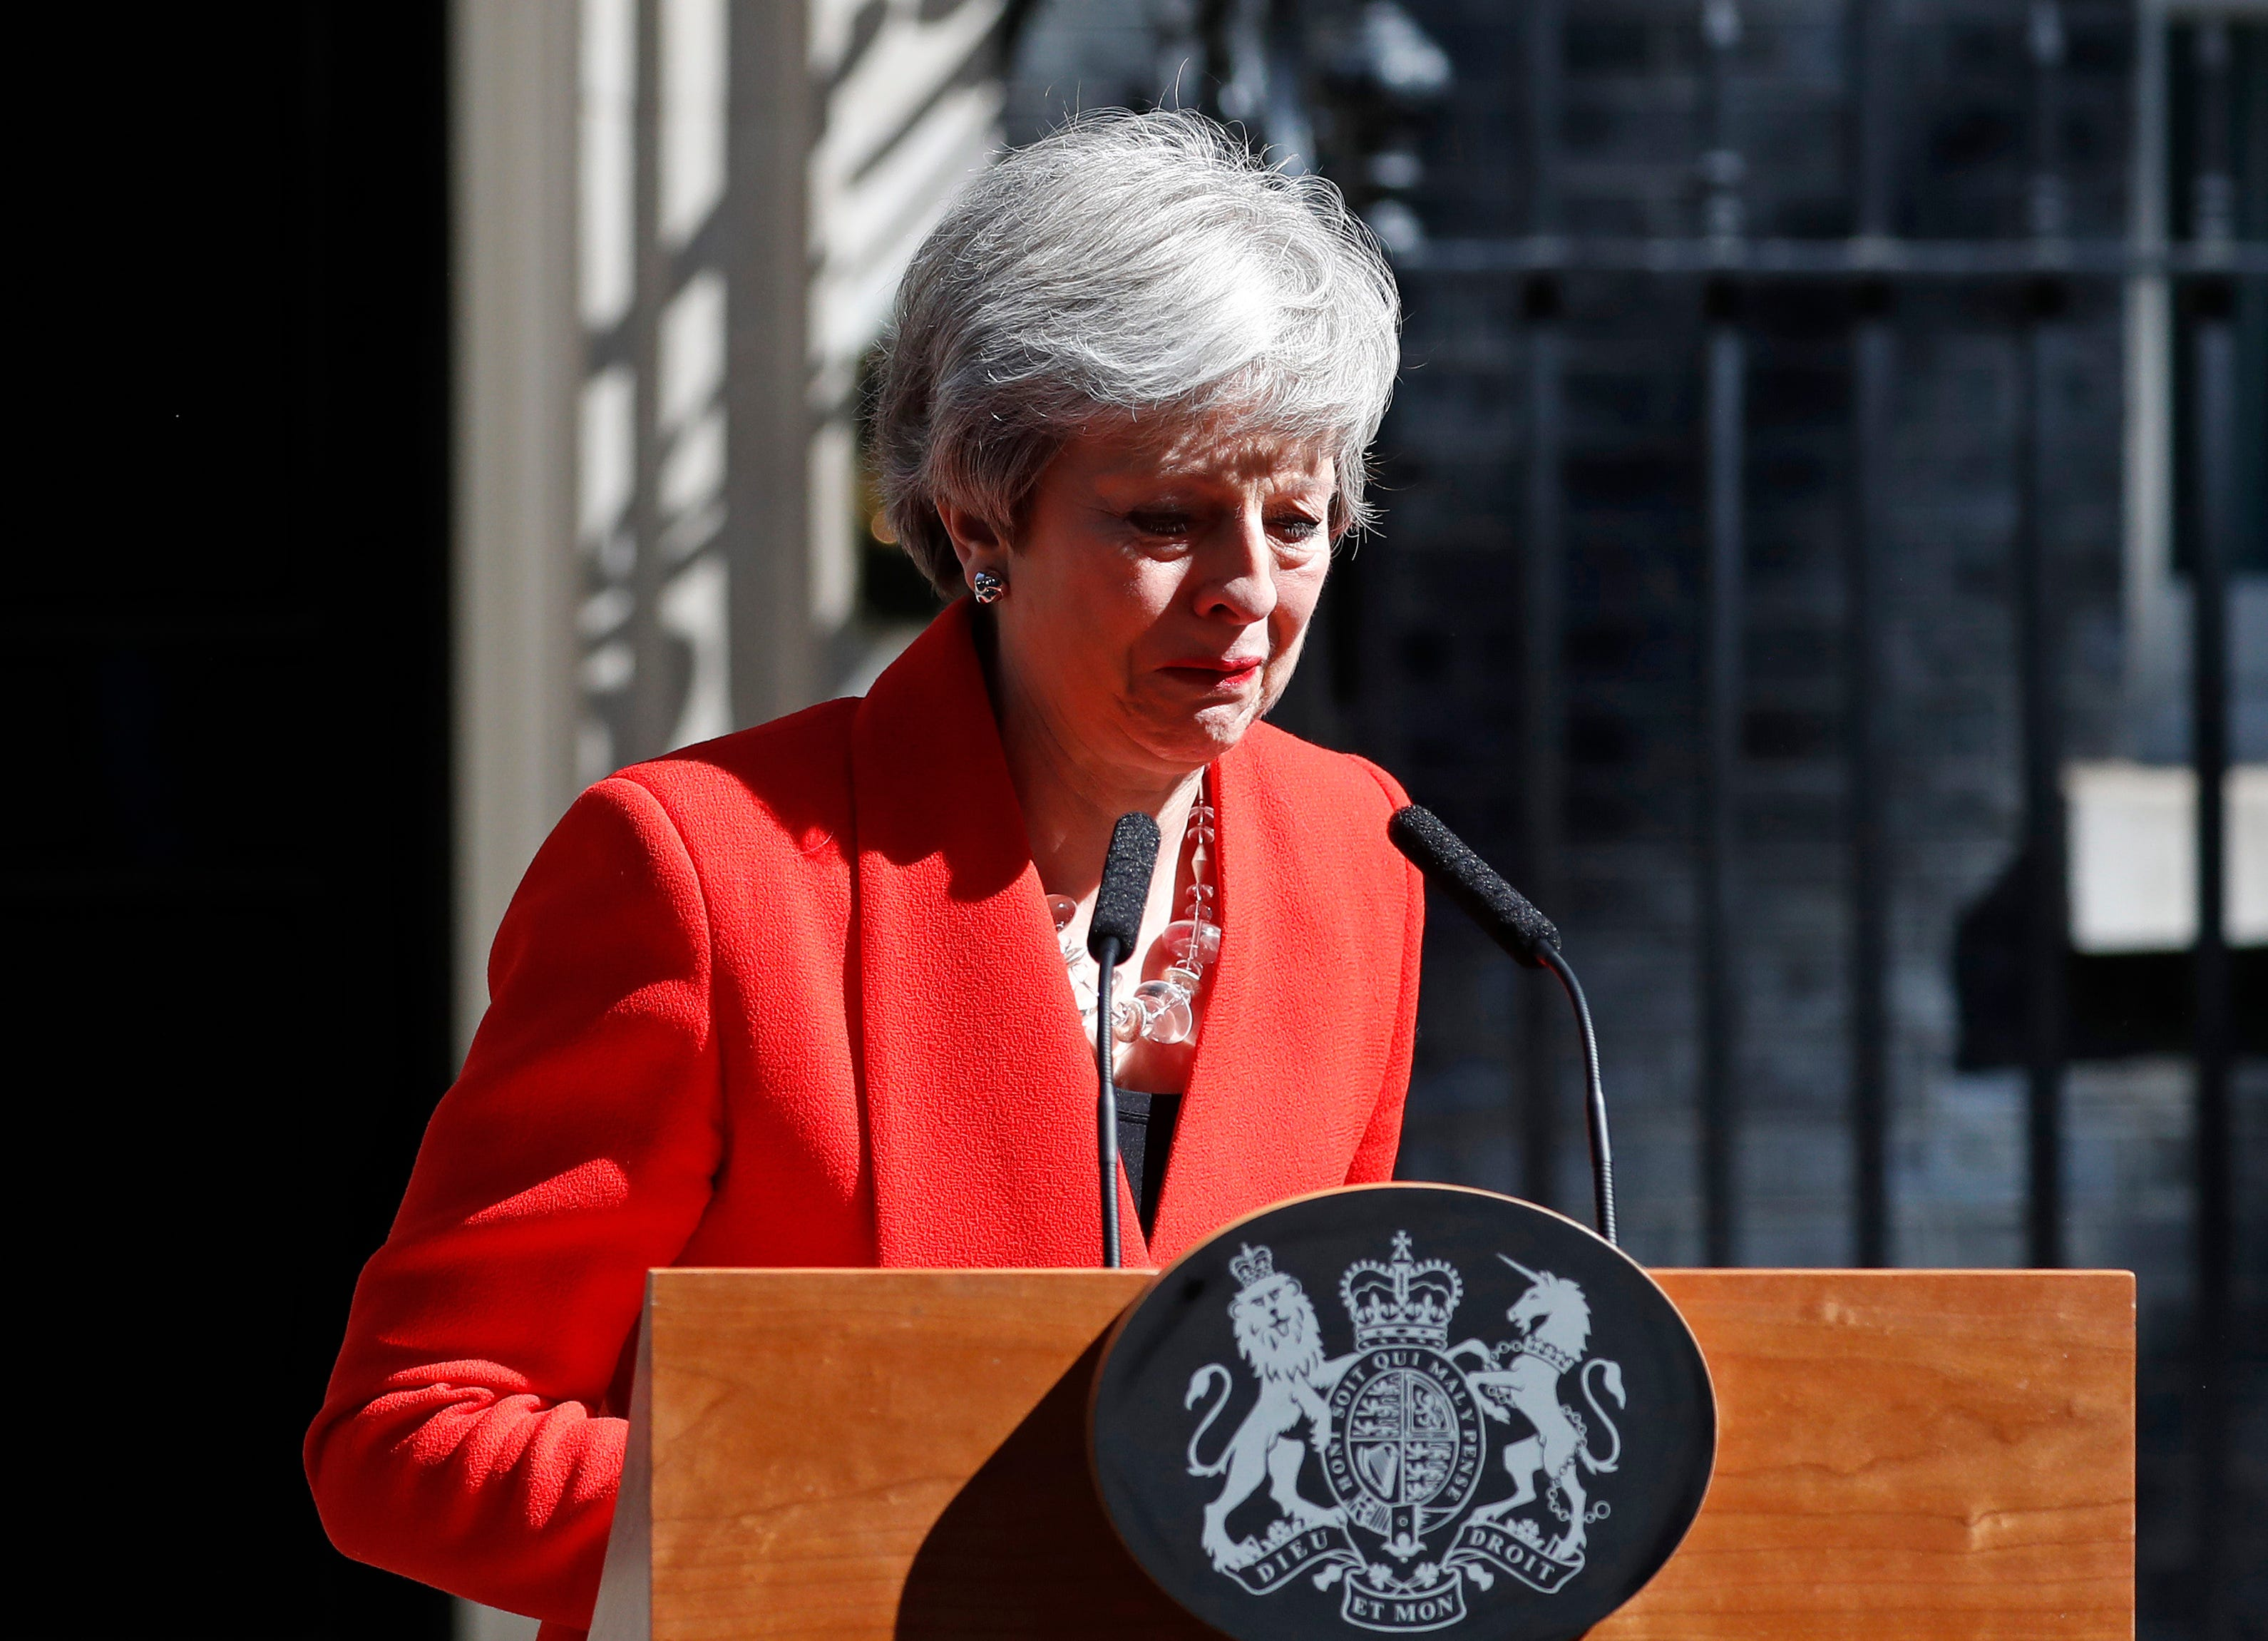 Britain's embattled leader Theresa May resigns premiership amid Brexit deadlock